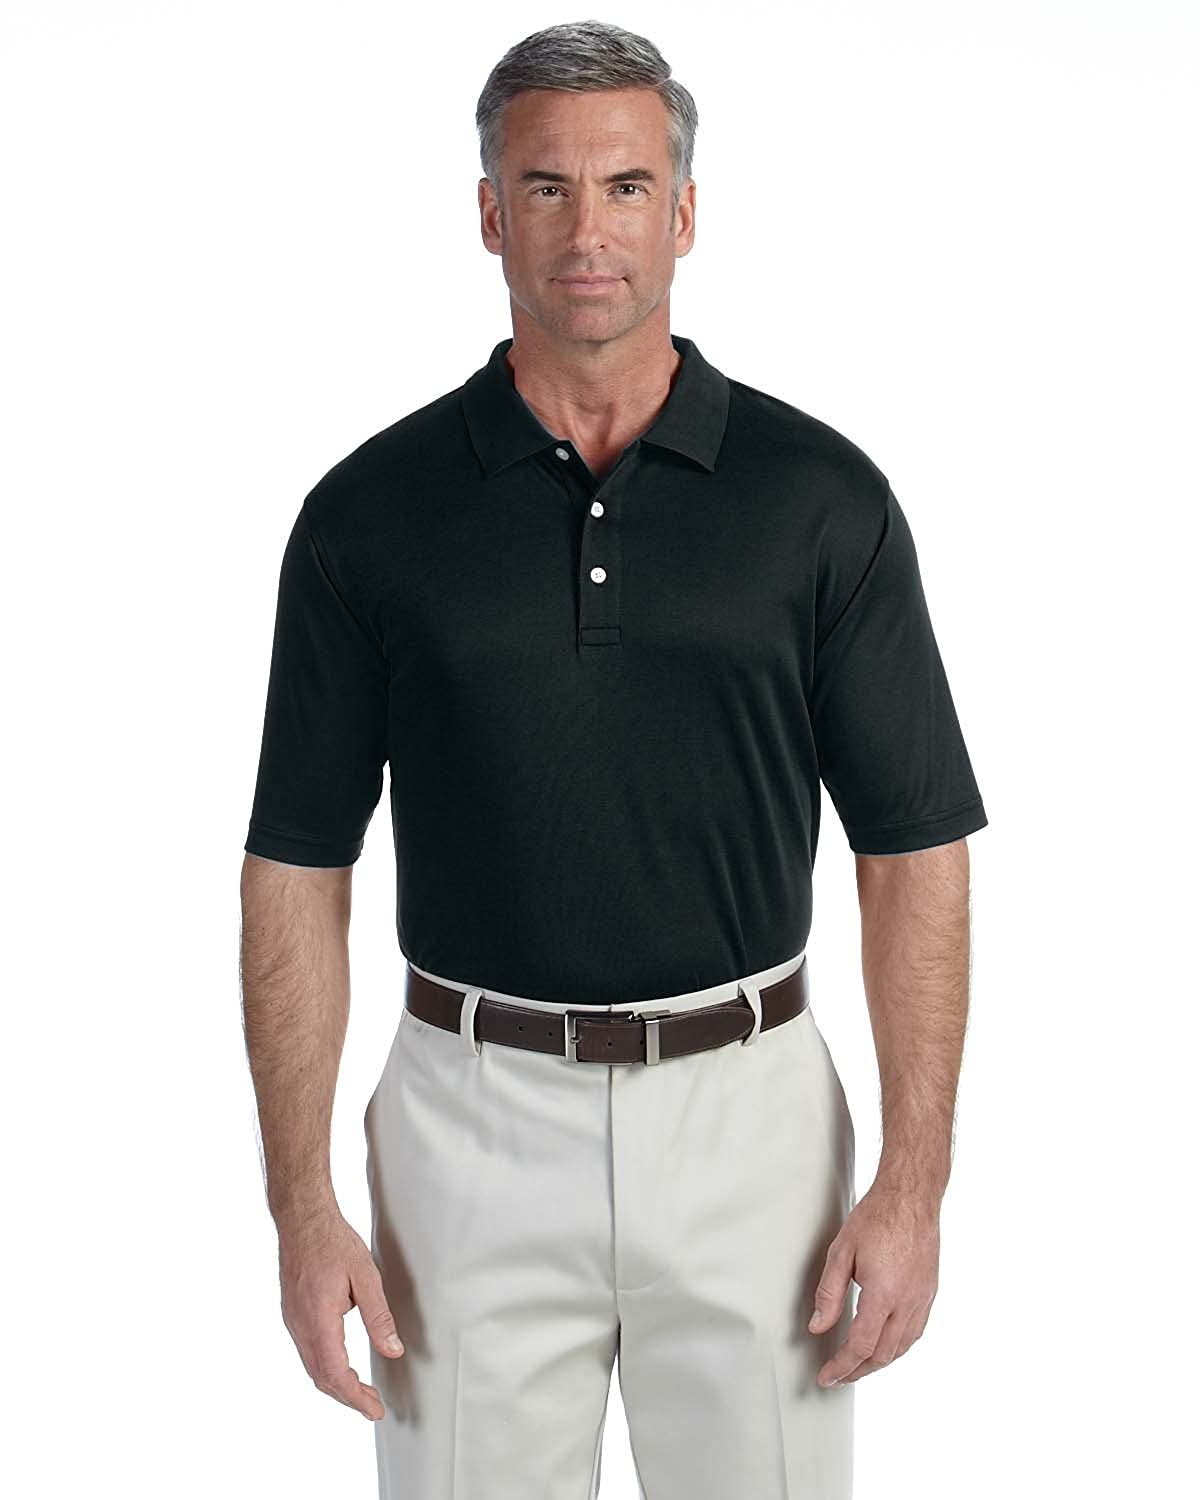 Black 2XL Devon /& Jones DG200 Mens Pima Tech Polo